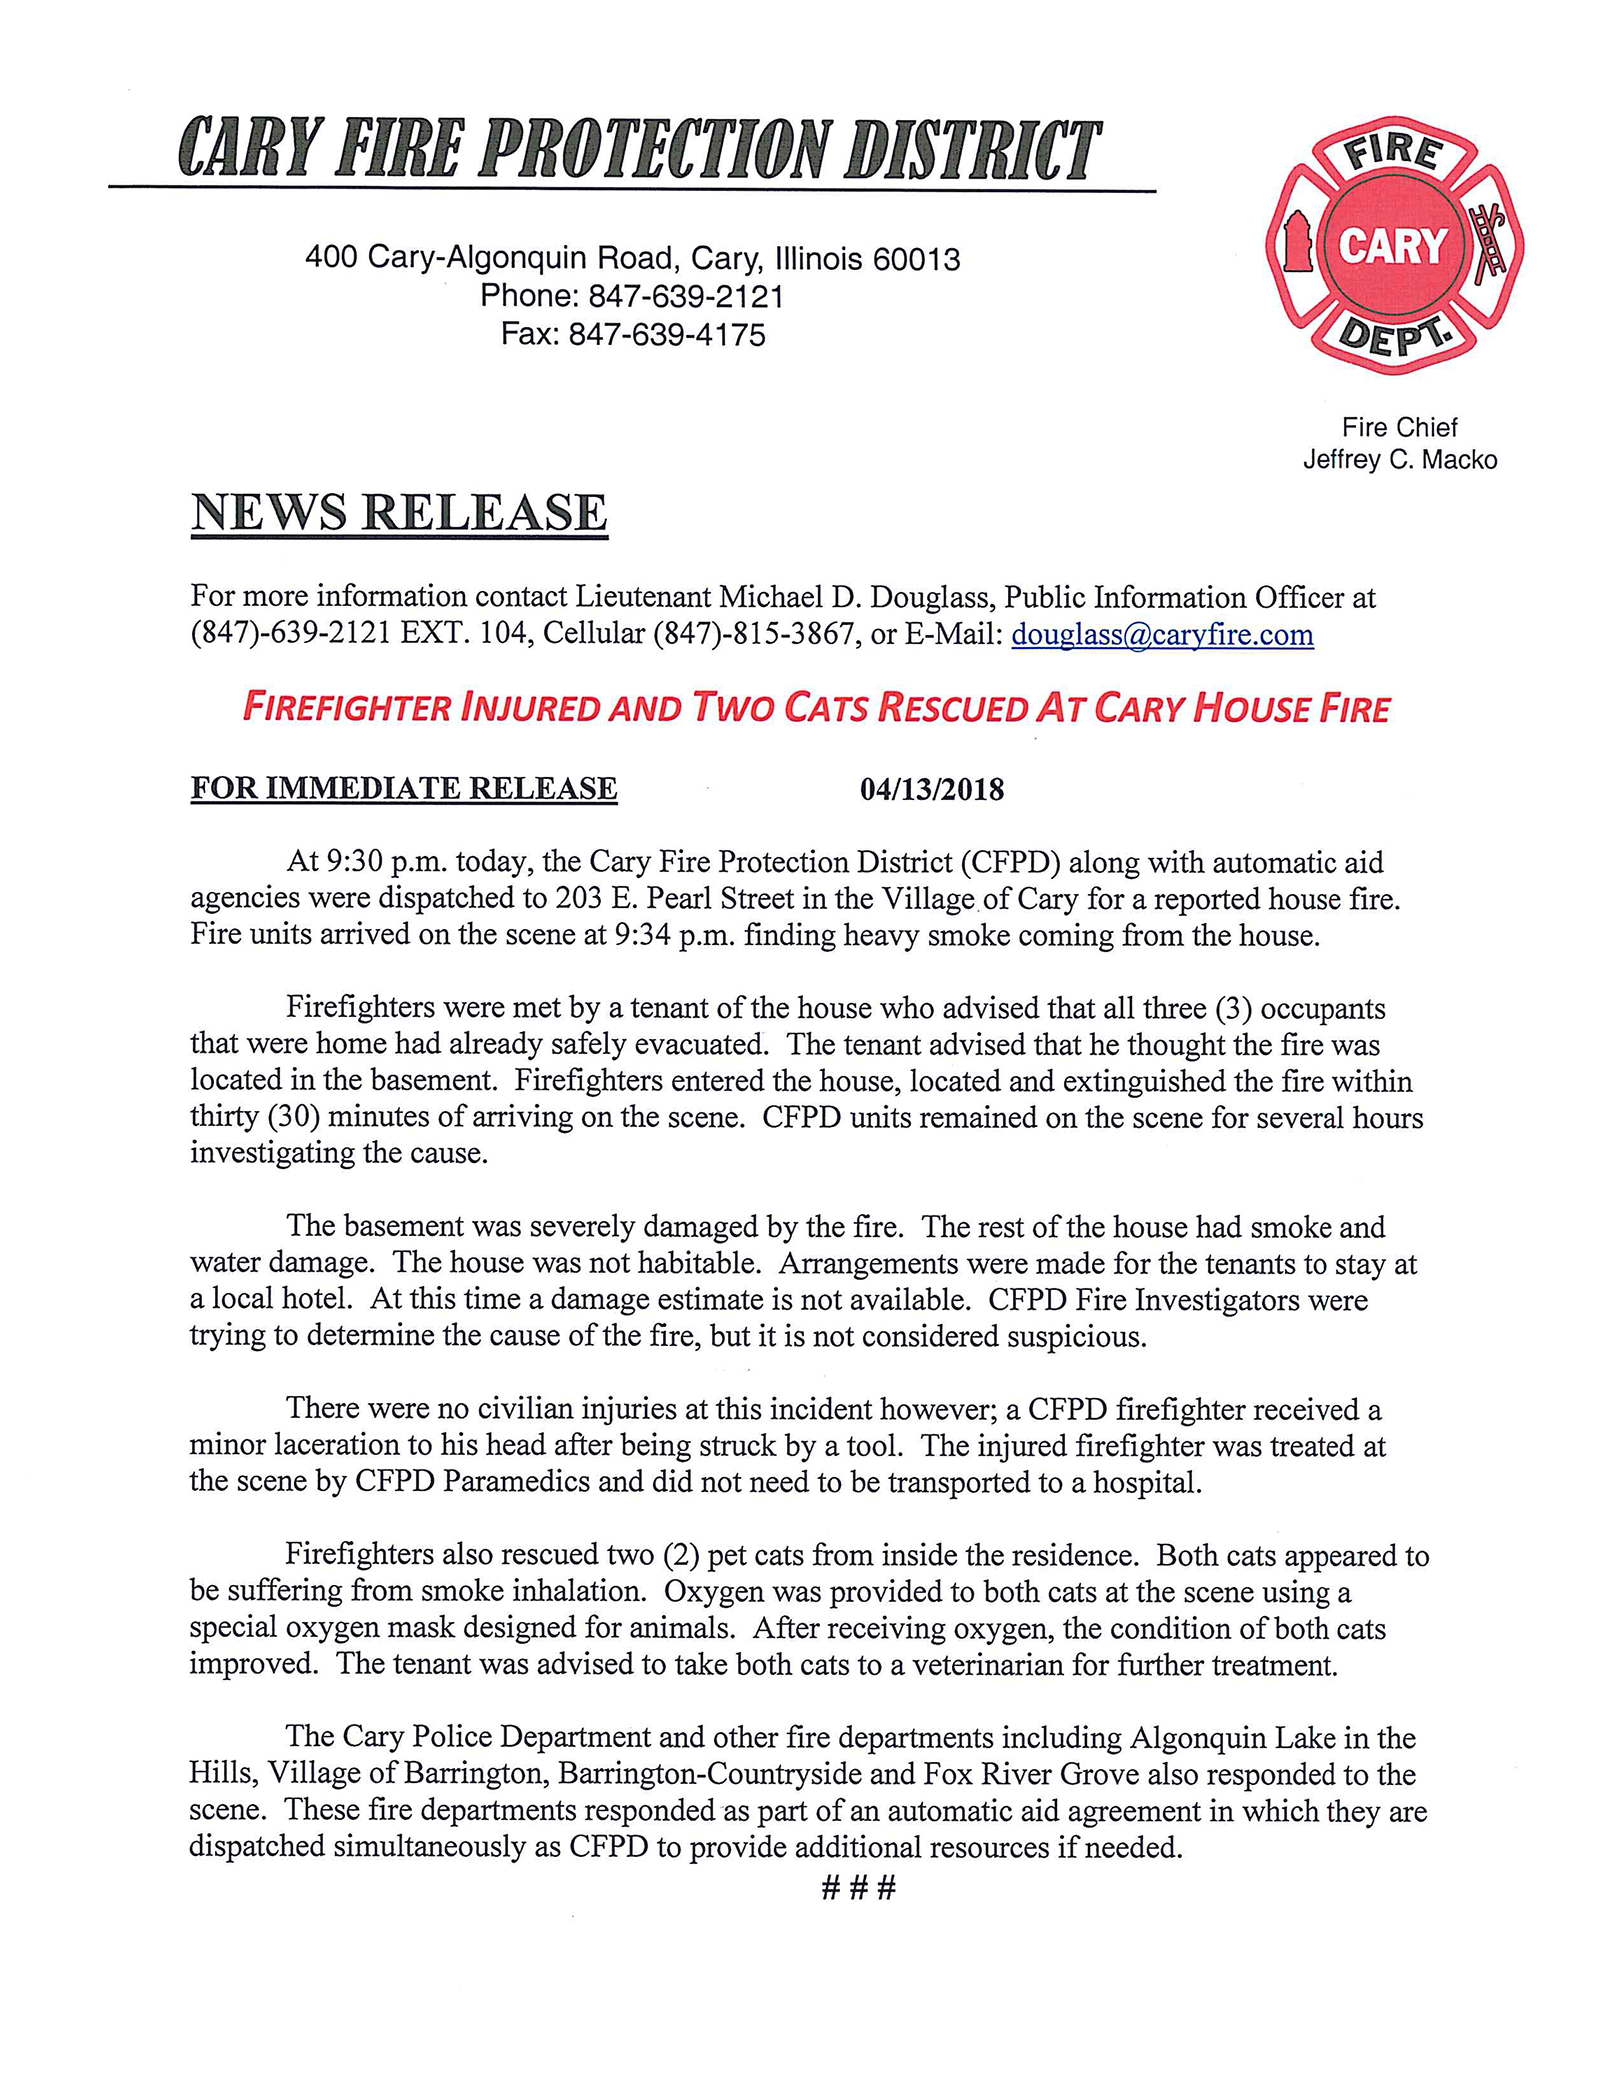 Cary Fire Protection District press release